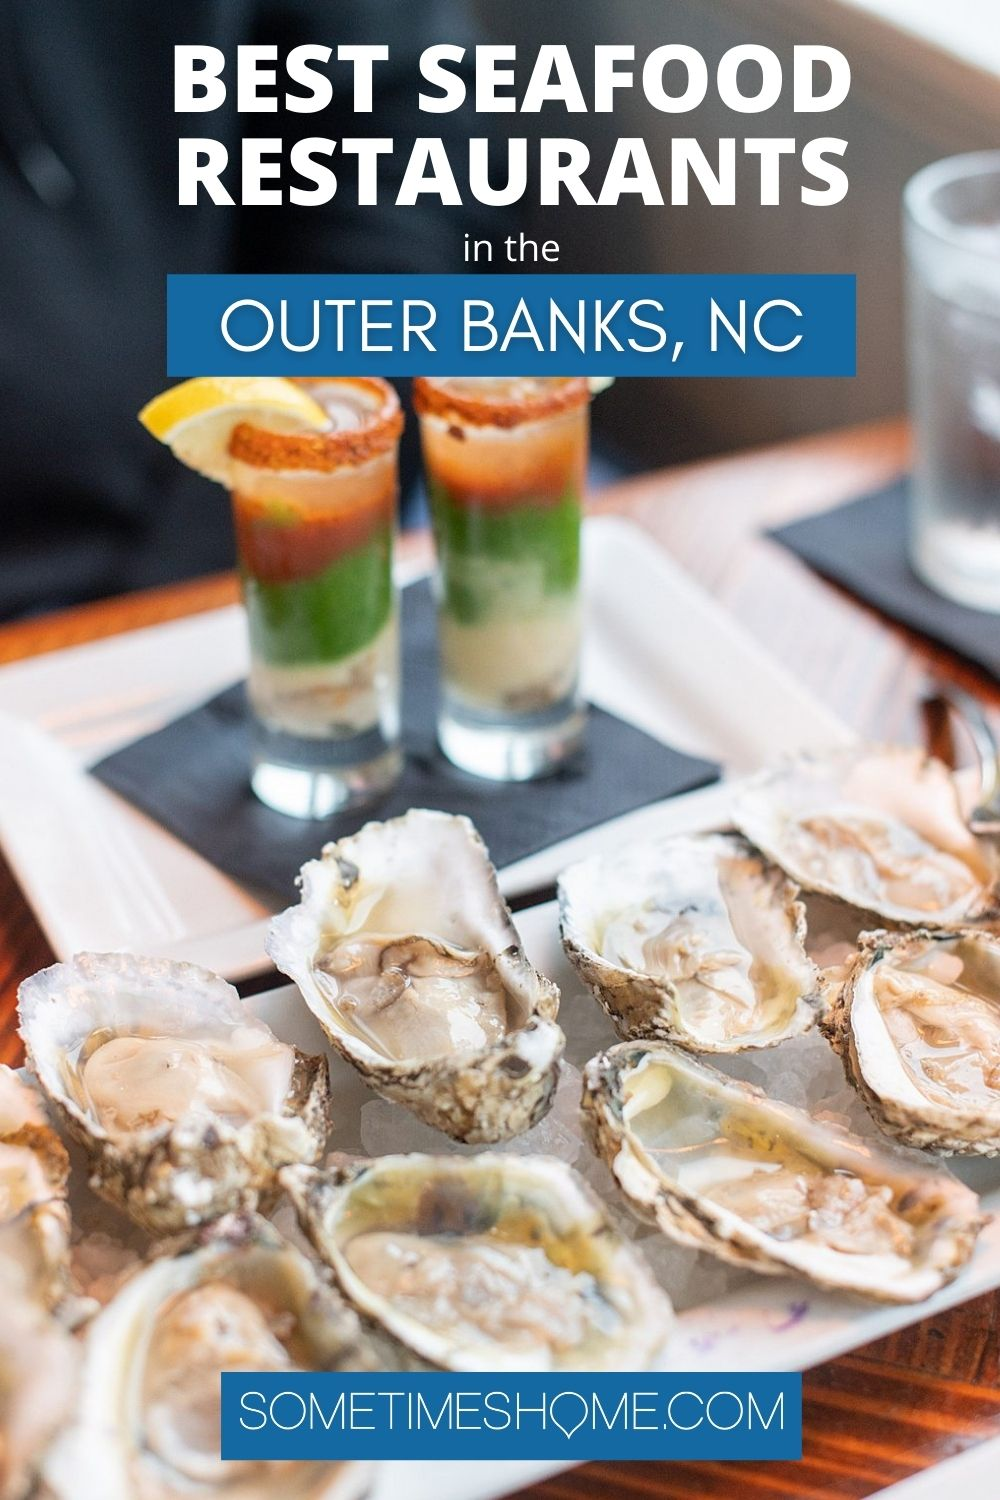 Pinterest graphic for the Best Seafood Restaurants in the Outer Banks, NC with a photo of raw oysters and two shot glasses.